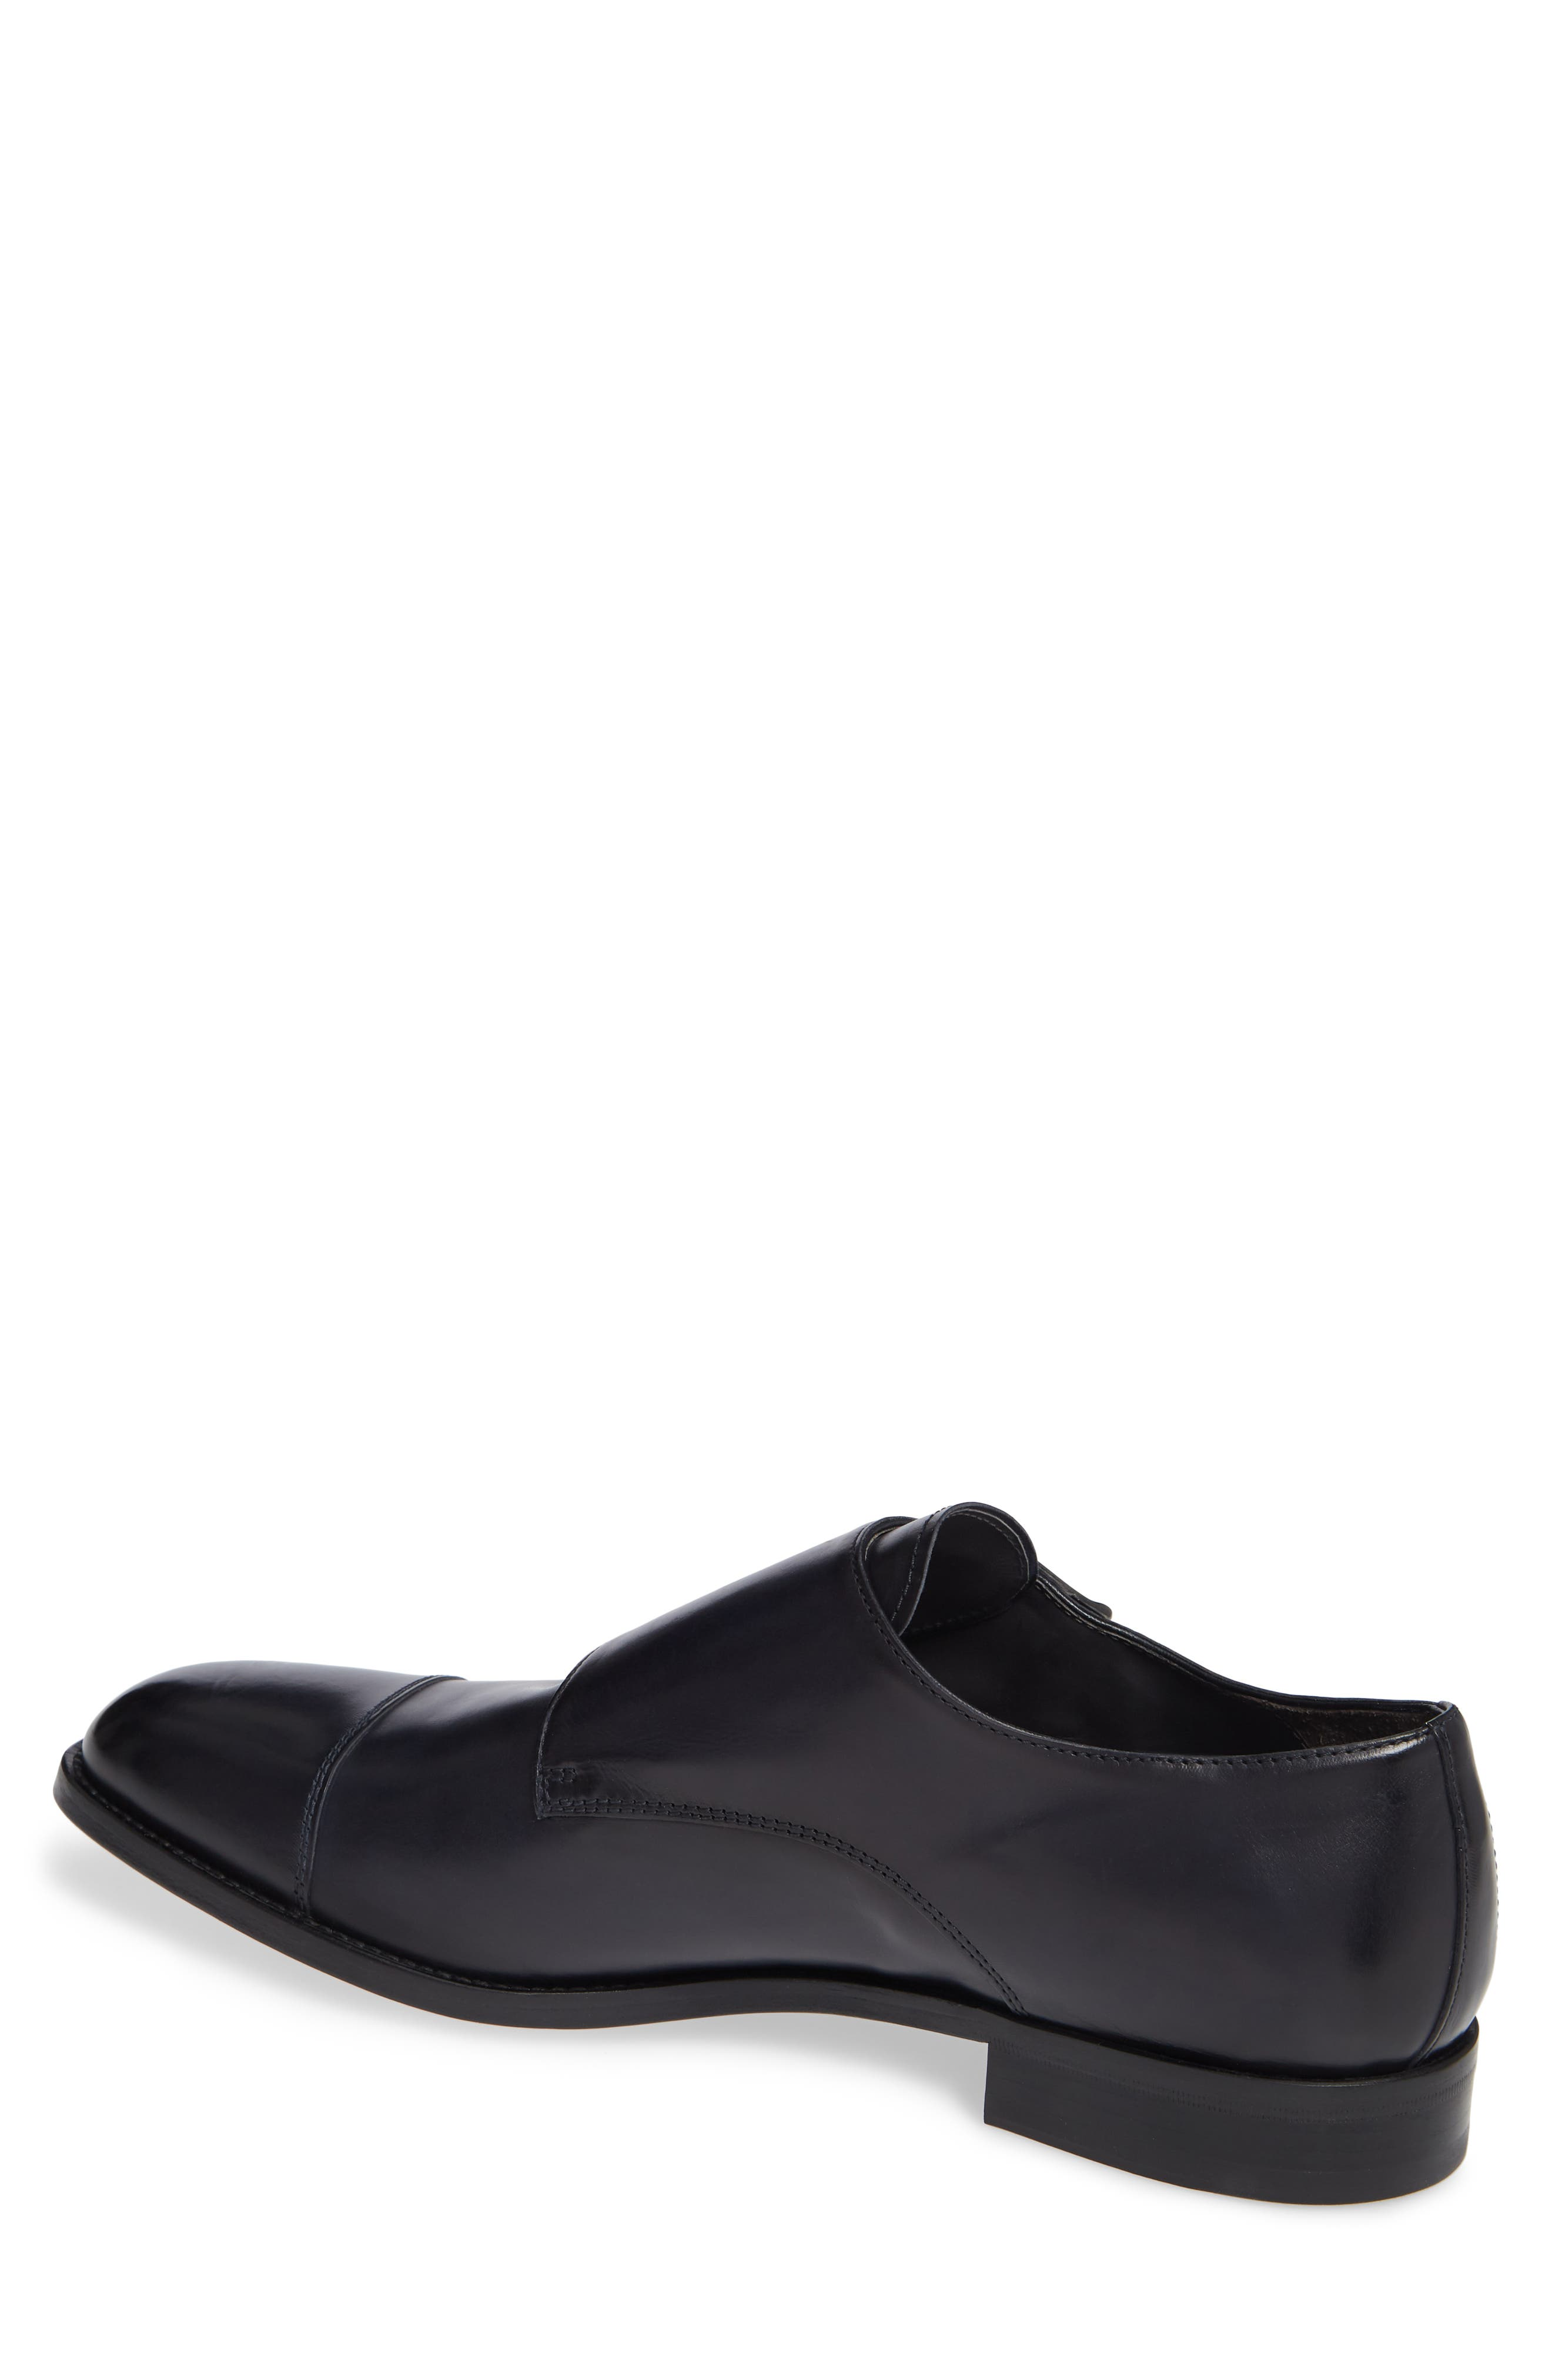 TO BOOT NEW YORK, Quentin Cap Toe Monk Shoe, Alternate thumbnail 2, color, BLUE MARINE LEATHER